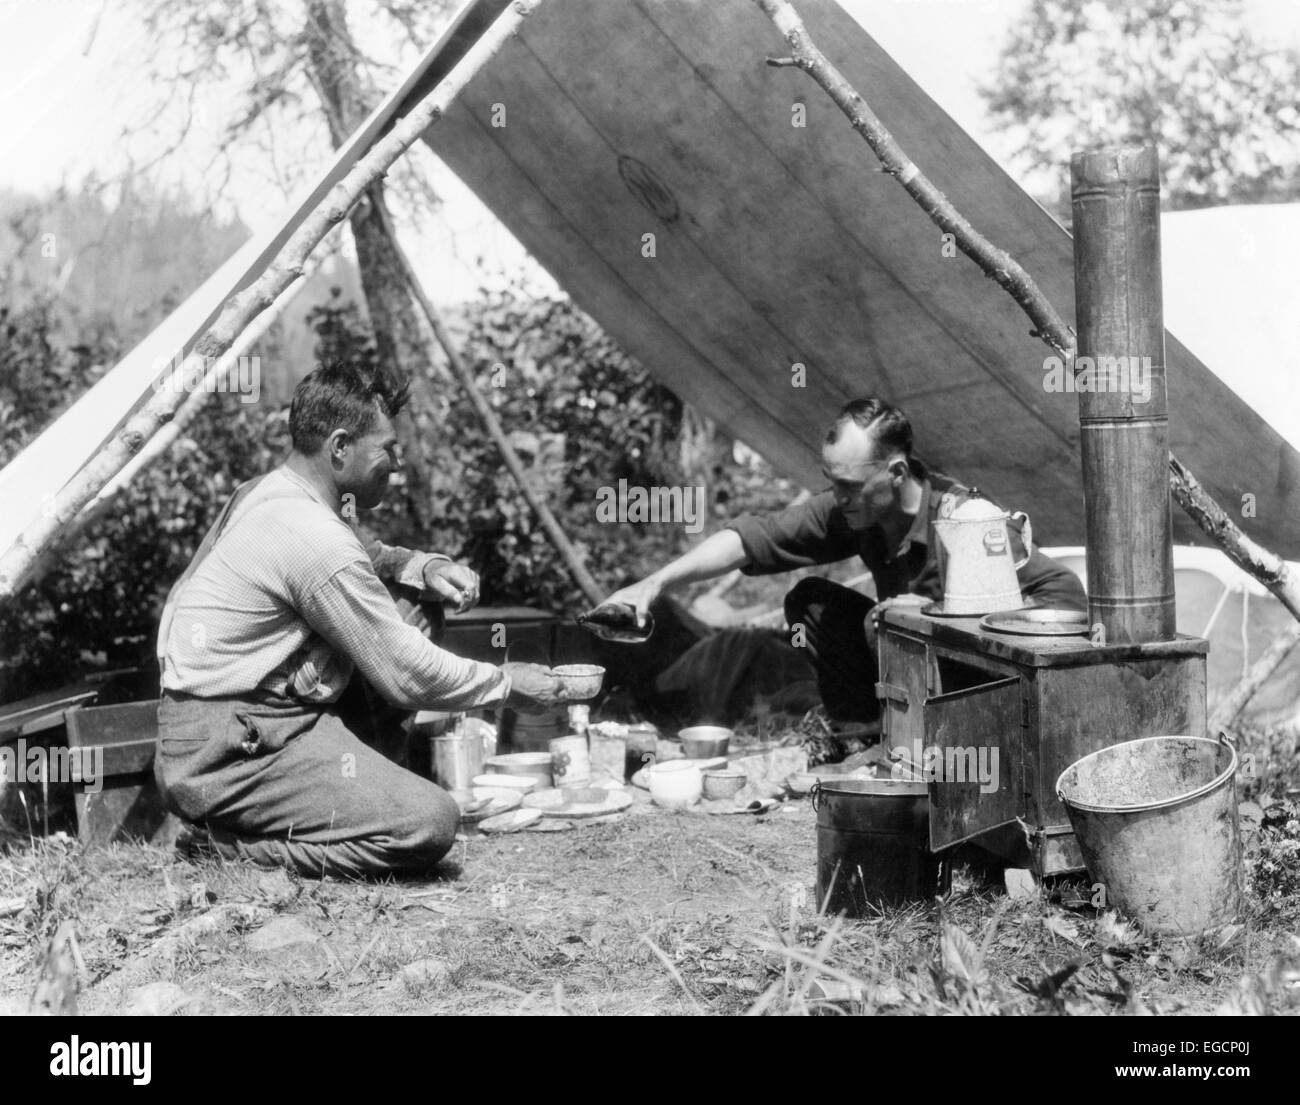 1920s TWO MEN EATING UNDER A FRAME TENT CANVAS TARP VICTUALS PROVISIONS COFFEE POT ON BLACK CAMP STOVE ADVENTURE ROUGHING IT & 1920s TWO MEN EATING UNDER A FRAME TENT CANVAS TARP VICTUALS Stock ...